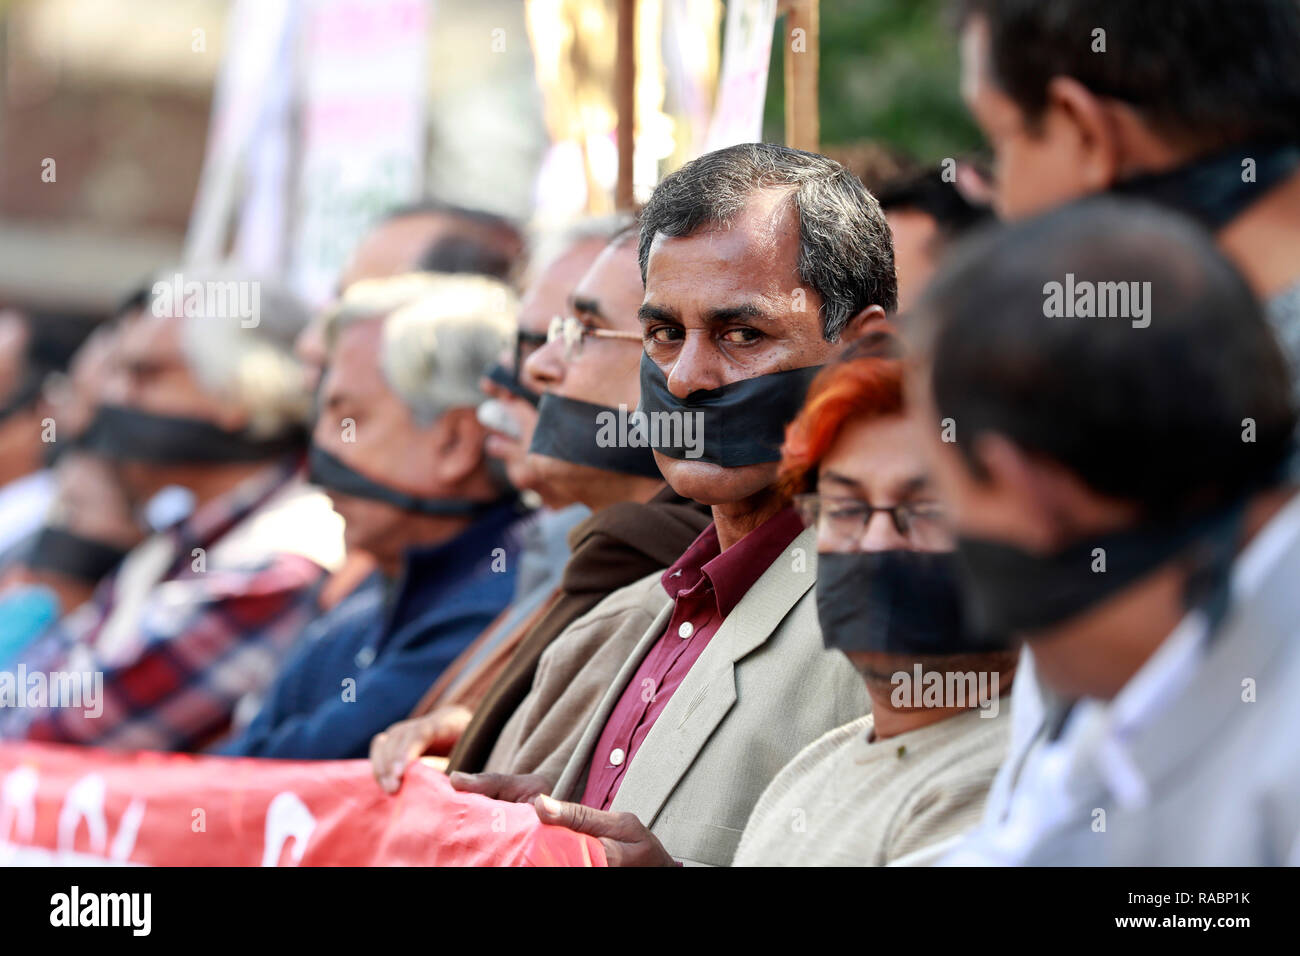 Dhaka, Bangladesh. 03rd Jan, 2019. Dhaka, Bangladesh - January 03, 2019: Bangladeshi left-wing activists organized by the Communist Party of Bangladesh wear black cloth over their mouths at a protest against the allegedly fraudulent victory of the ruling Awami League in the recent general election, in Dhaka on January 3, 2019. Credit: SK Hasan Ali/Alamy Live News - Stock Image